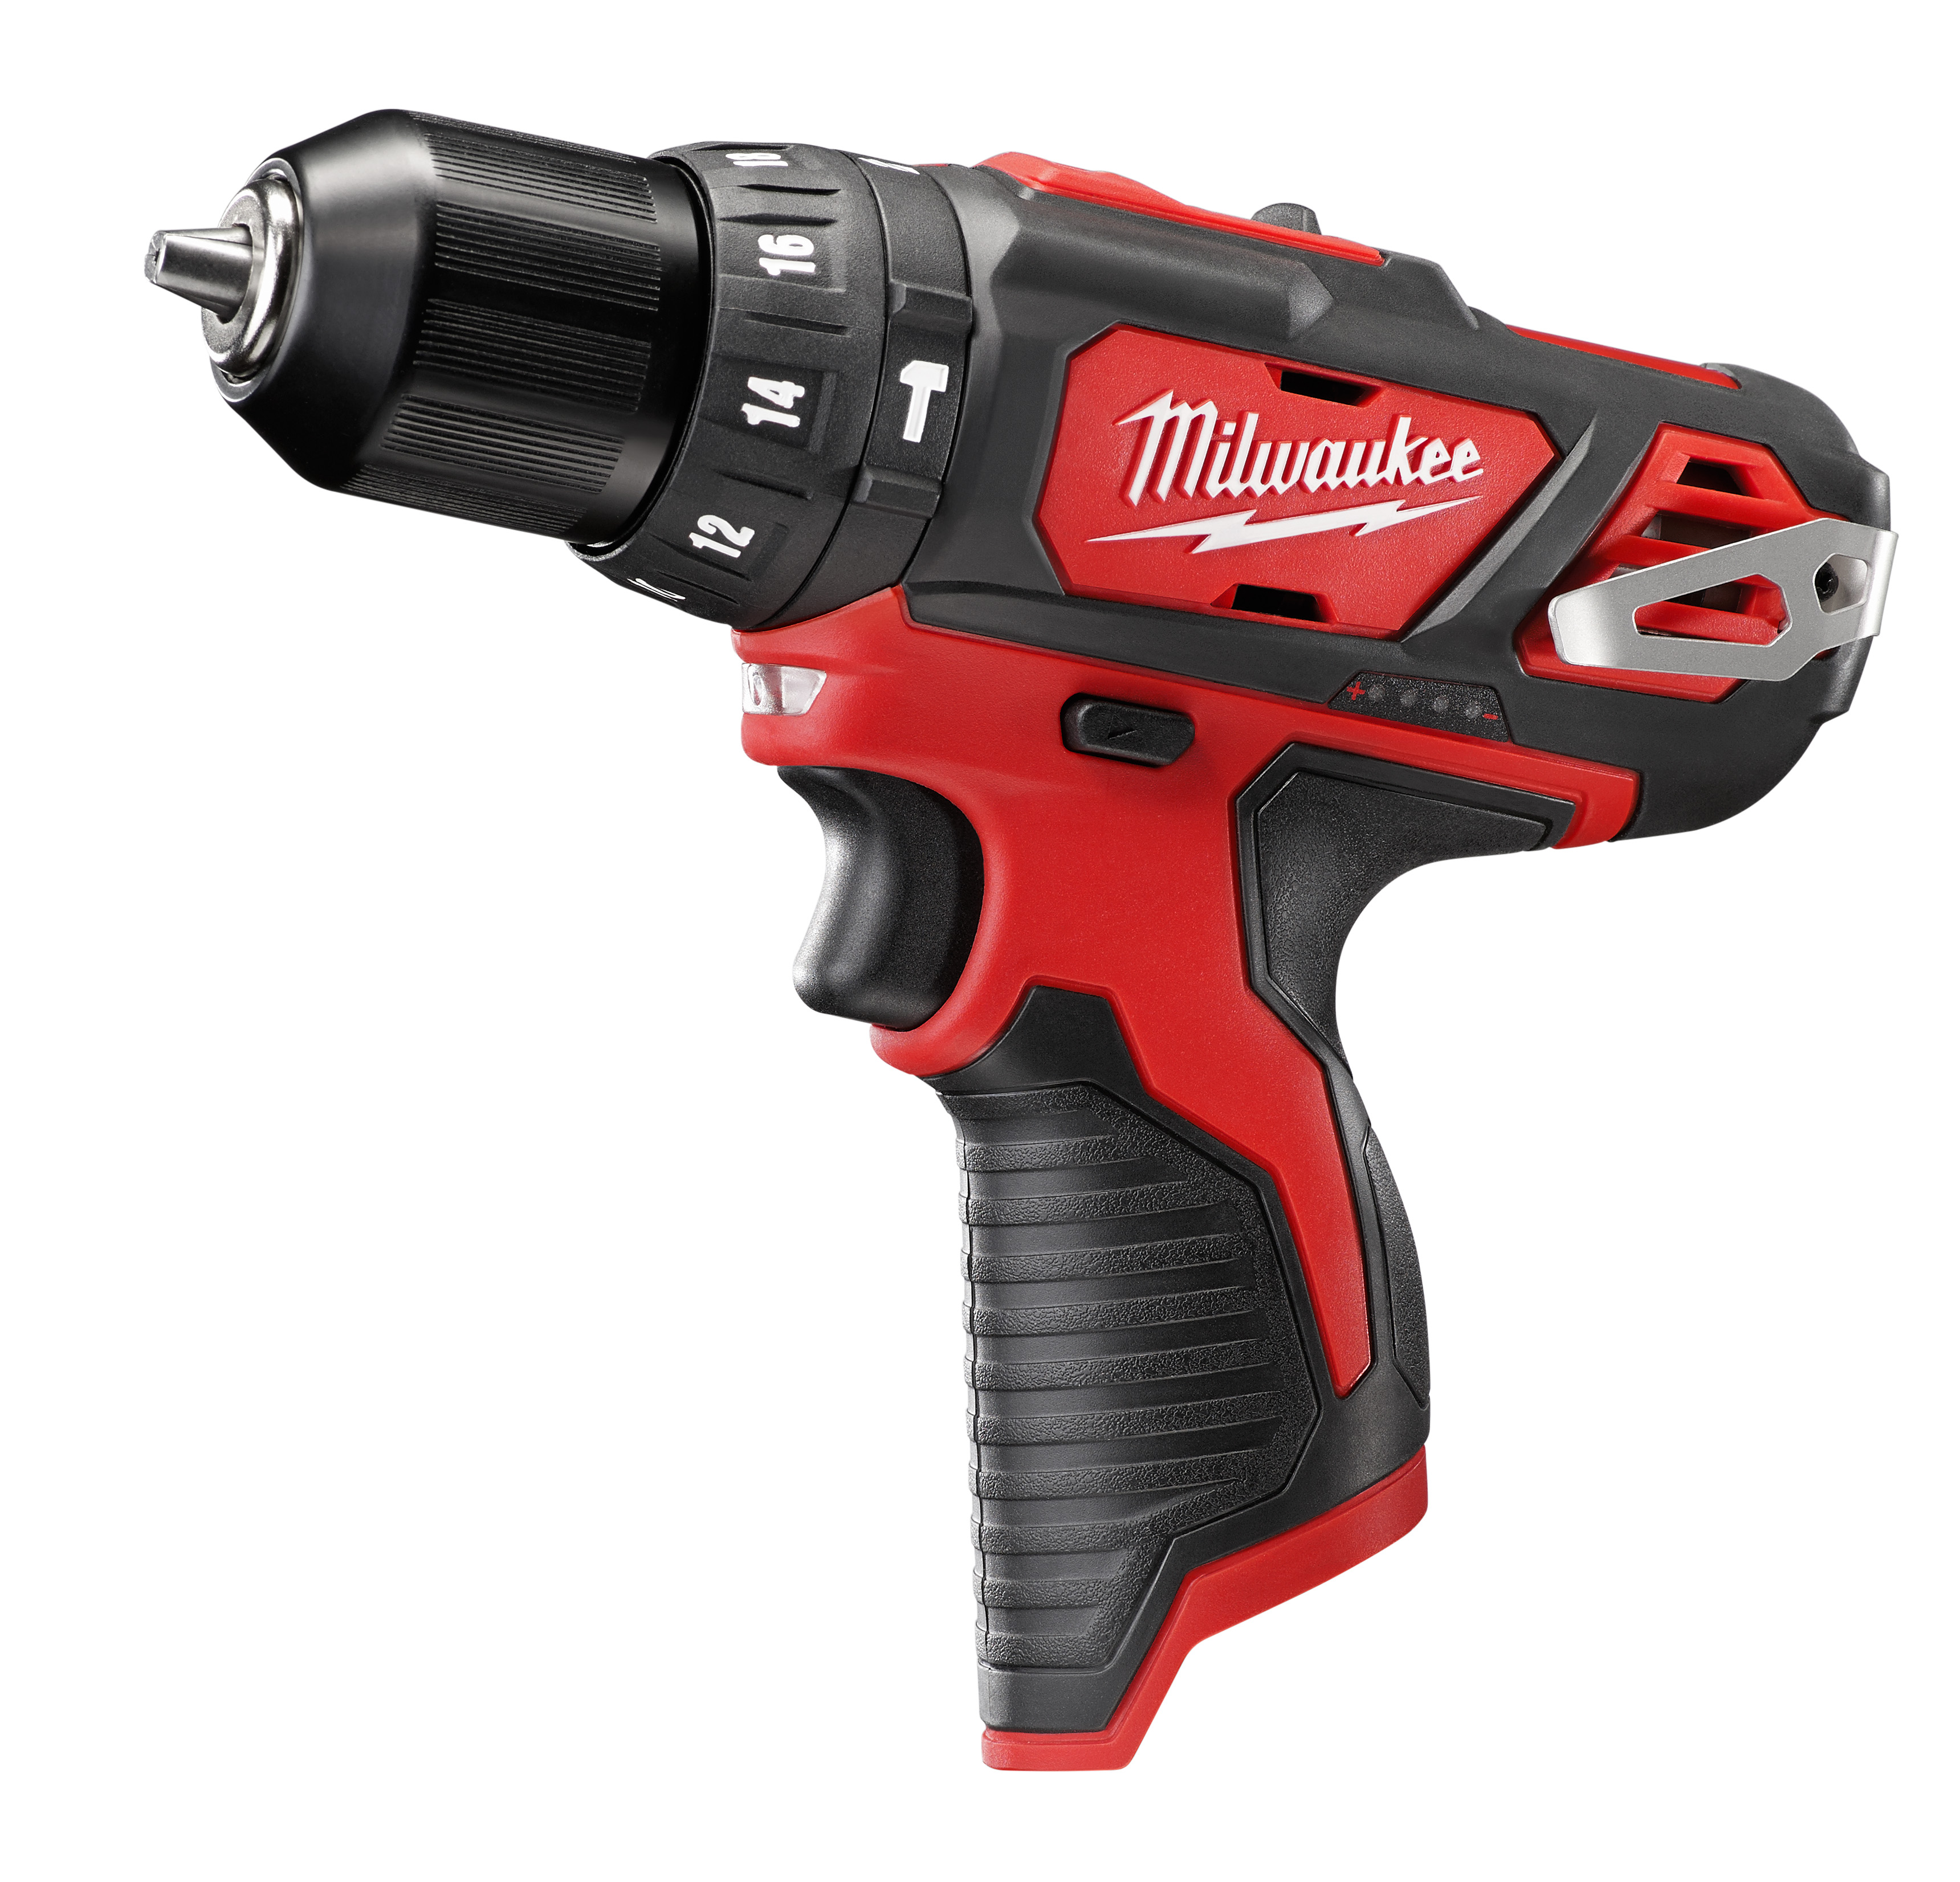 Milwaukee® M12™ 2408-20 Cordless Hammer Drill/Driver, 3/8 in Keyless Chuck, 12 VDC, 400/1500 rpm No-Load, Lithium-Ion Battery